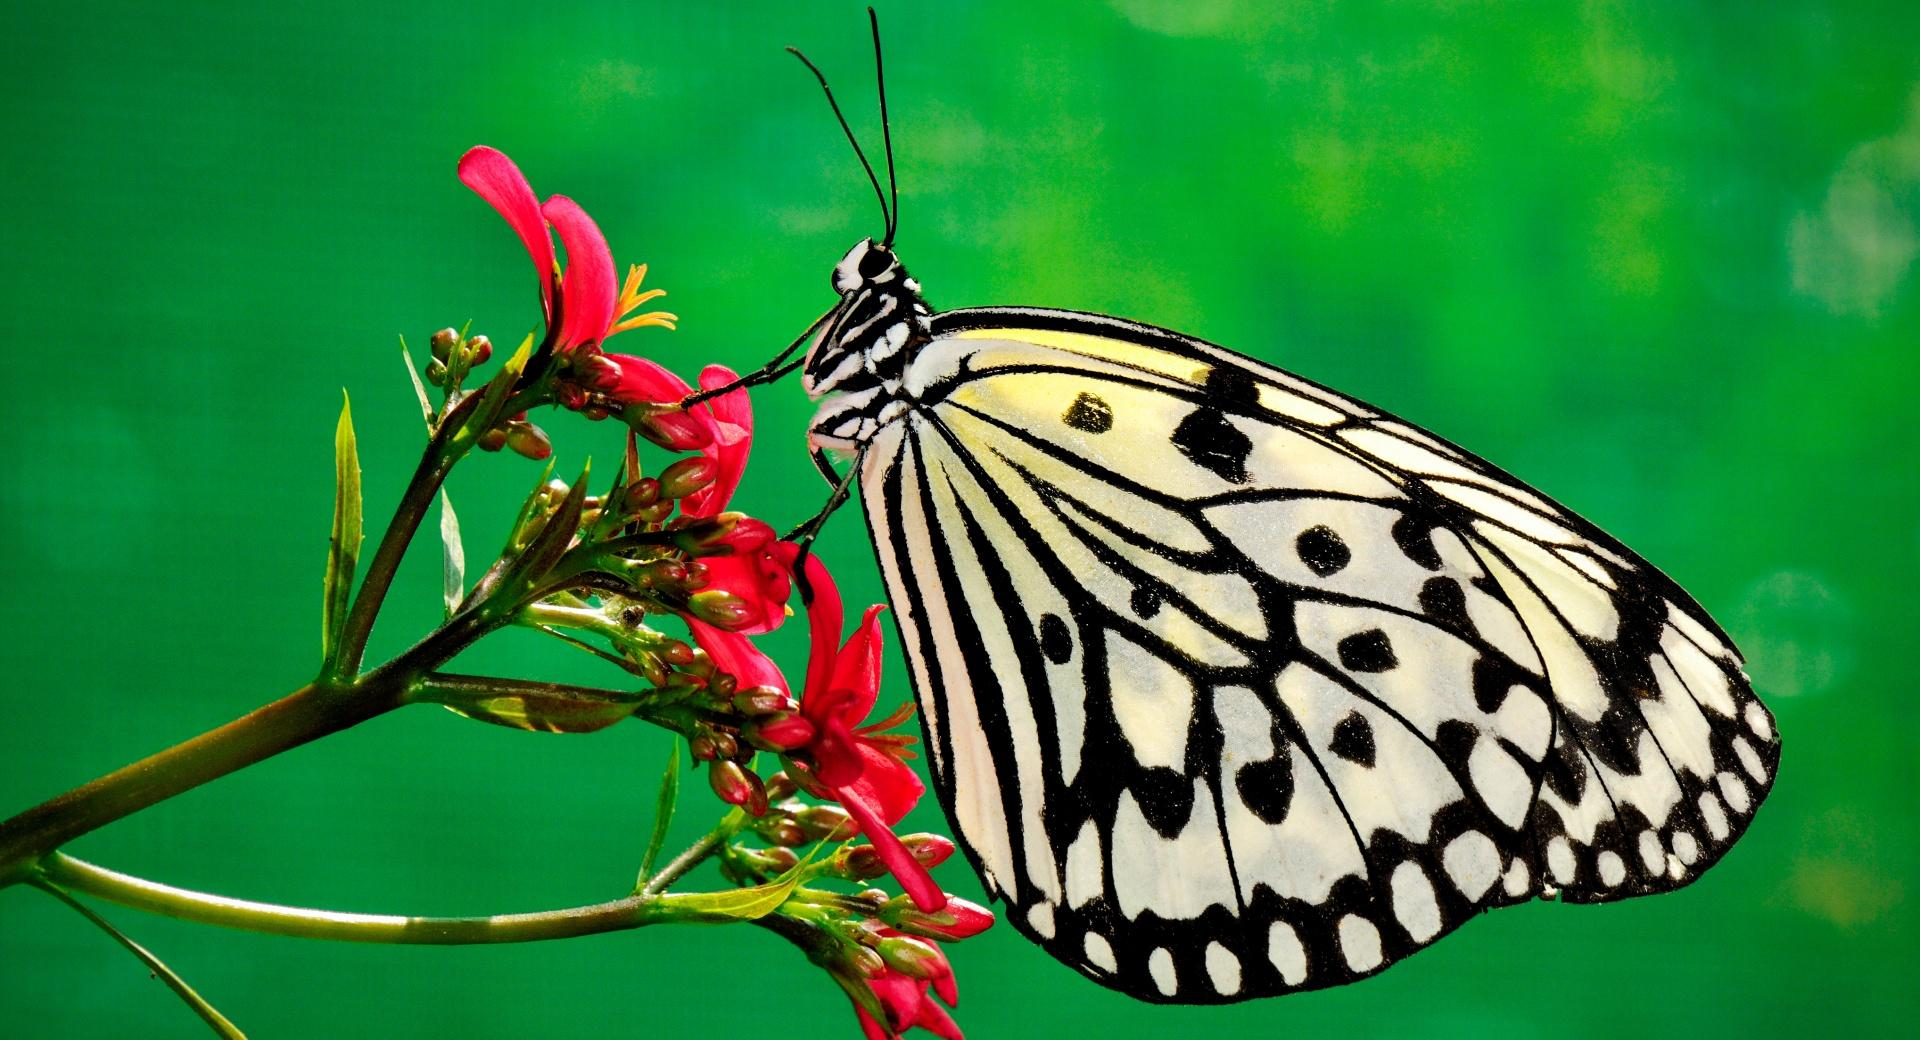 Butterfly, Nature wallpapers HD quality